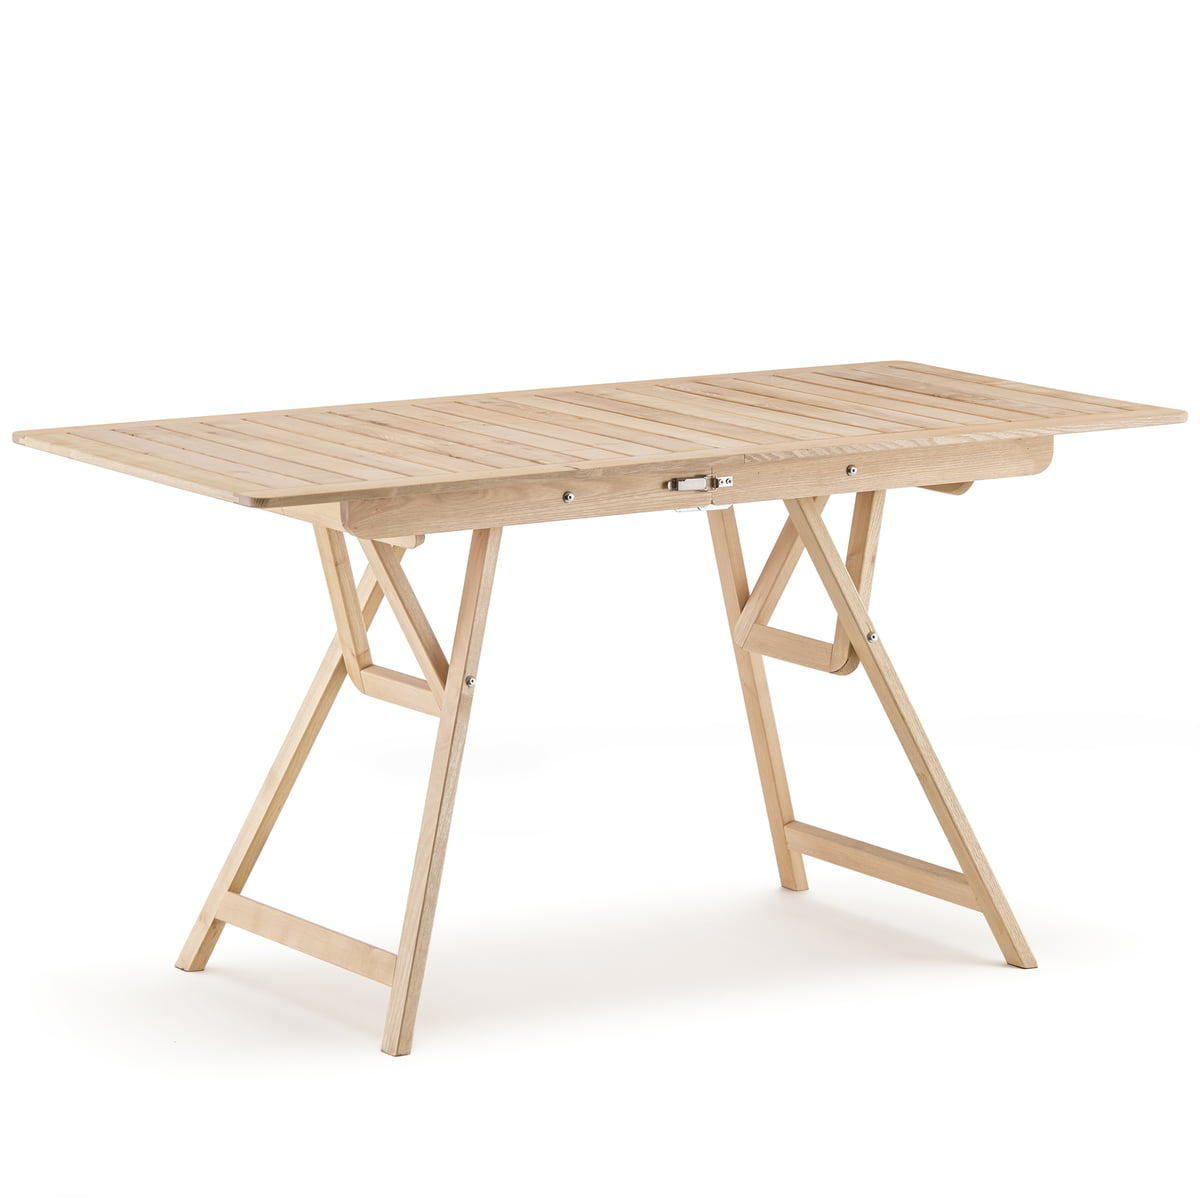 Fiam - Robin 140 table en bois, robinia